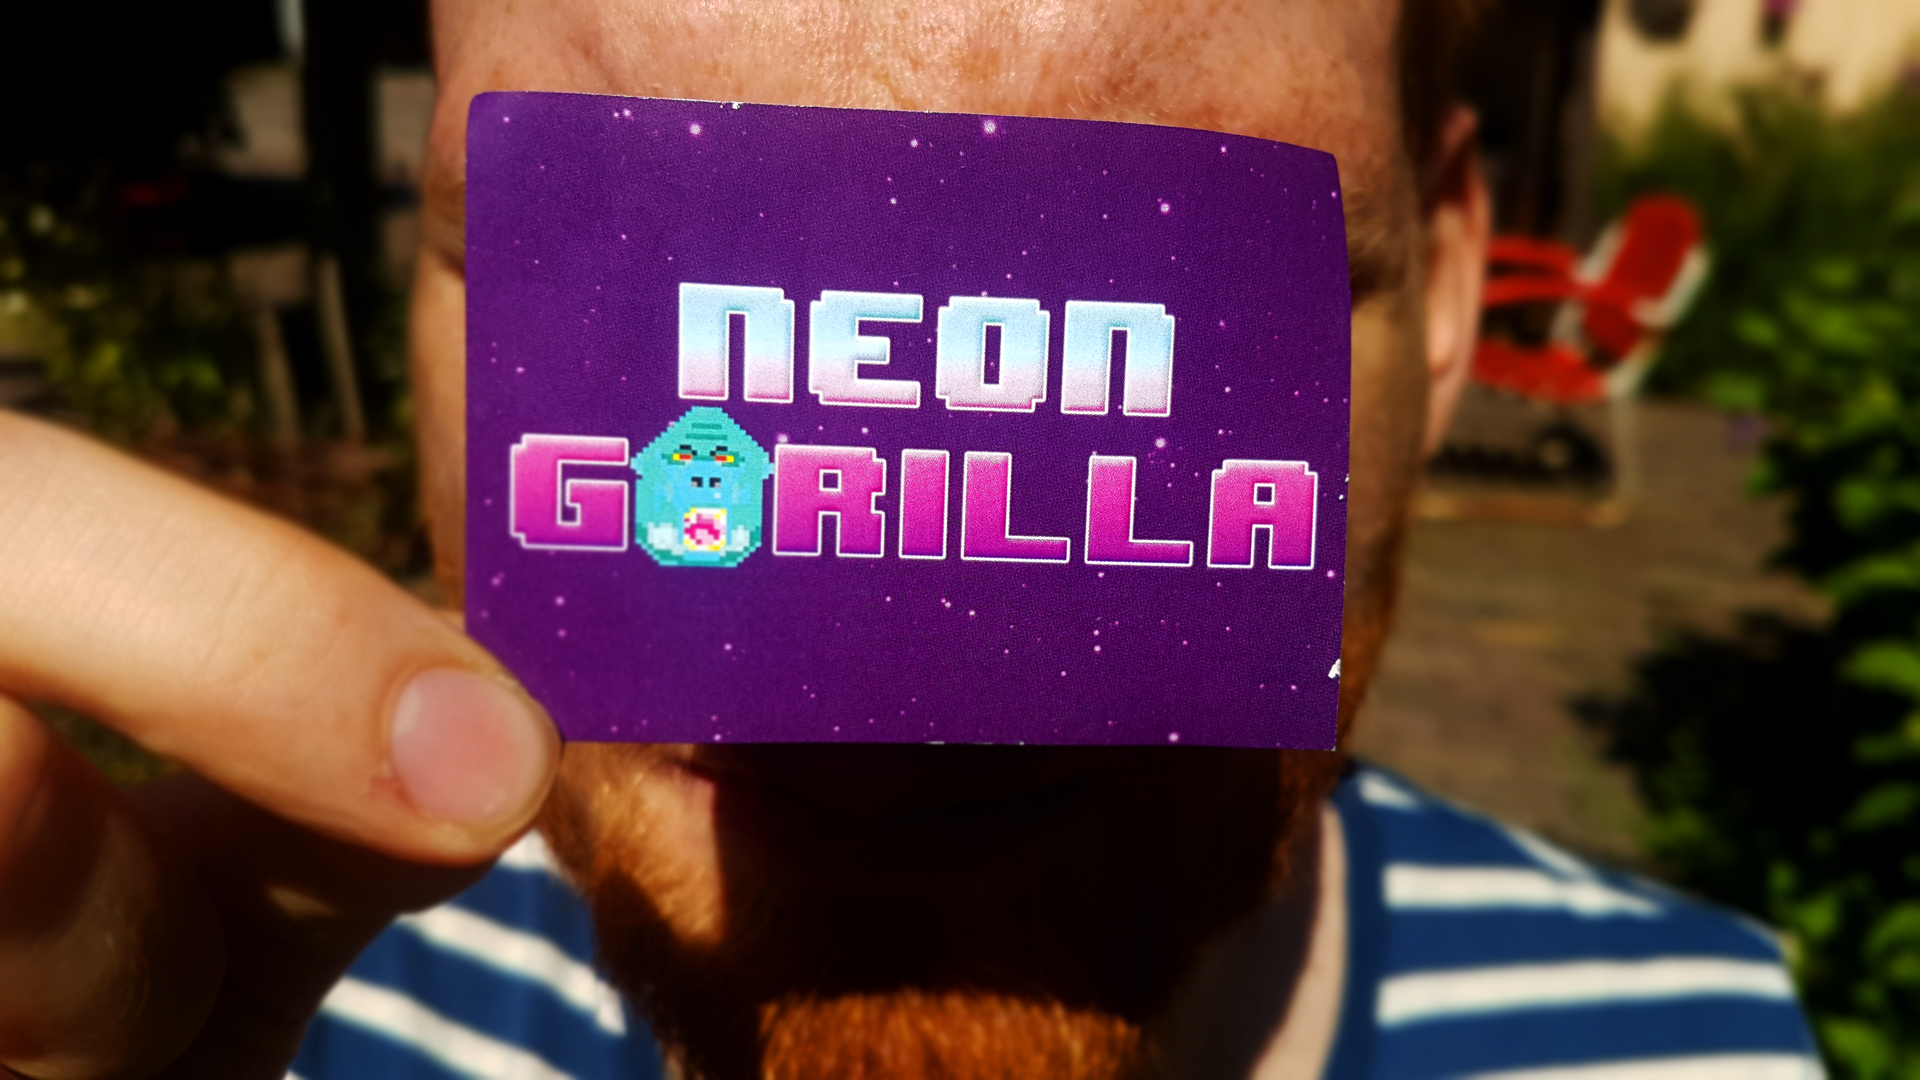 Even over Neon Gorilla